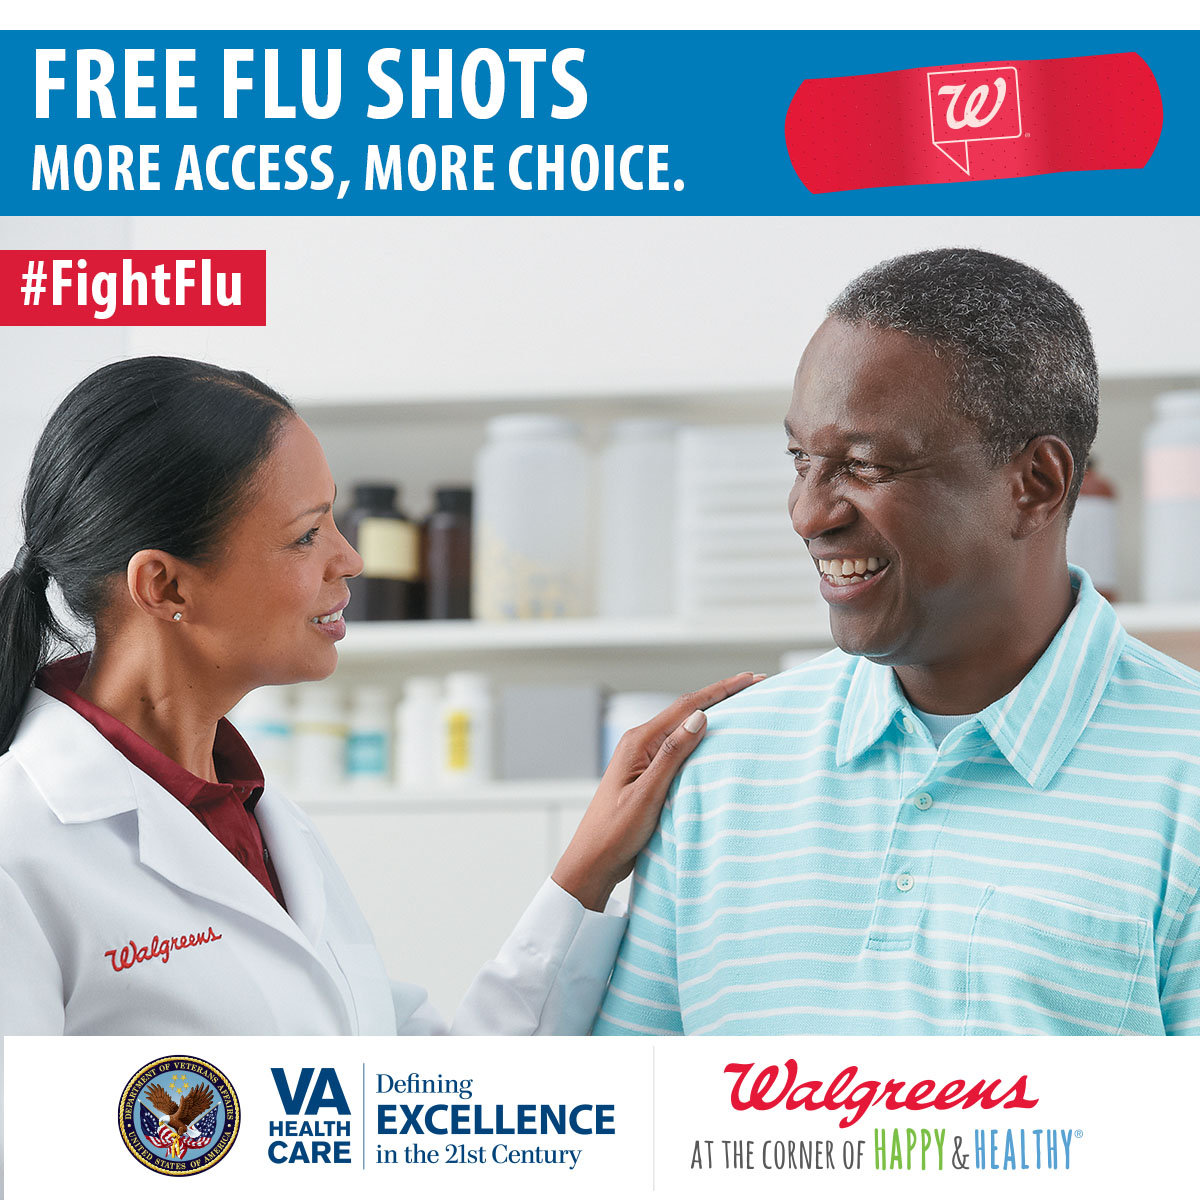 Here are the details you need to know about getting the flu vaccine as a military family. Tricare pays for the flu vaccine, but they have strict guidelines that you must follow in order for your insurance to cover the cost.